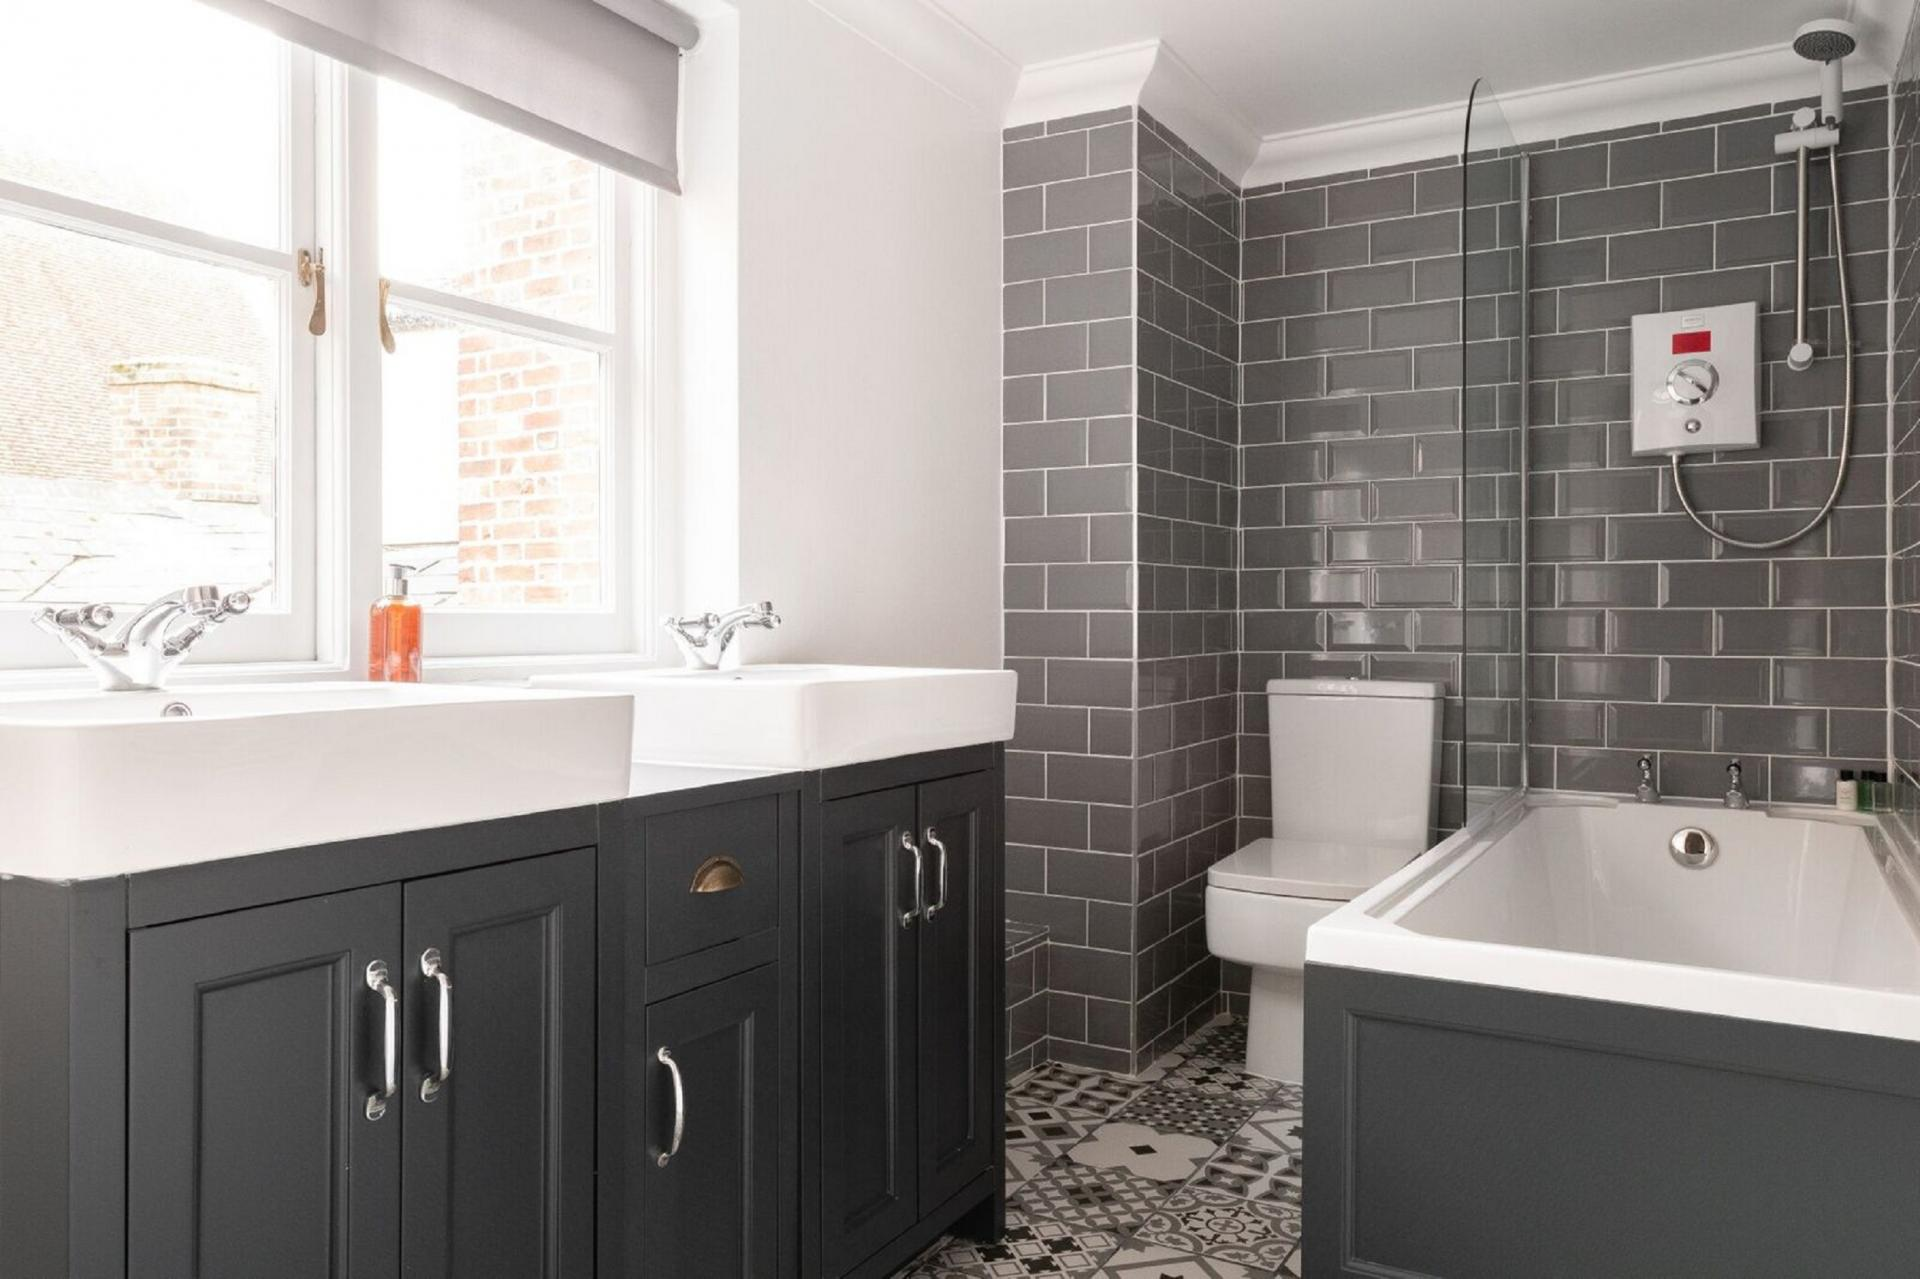 Bathroom at The Oxford Loft, Centre, Oxford - Citybase Apartments